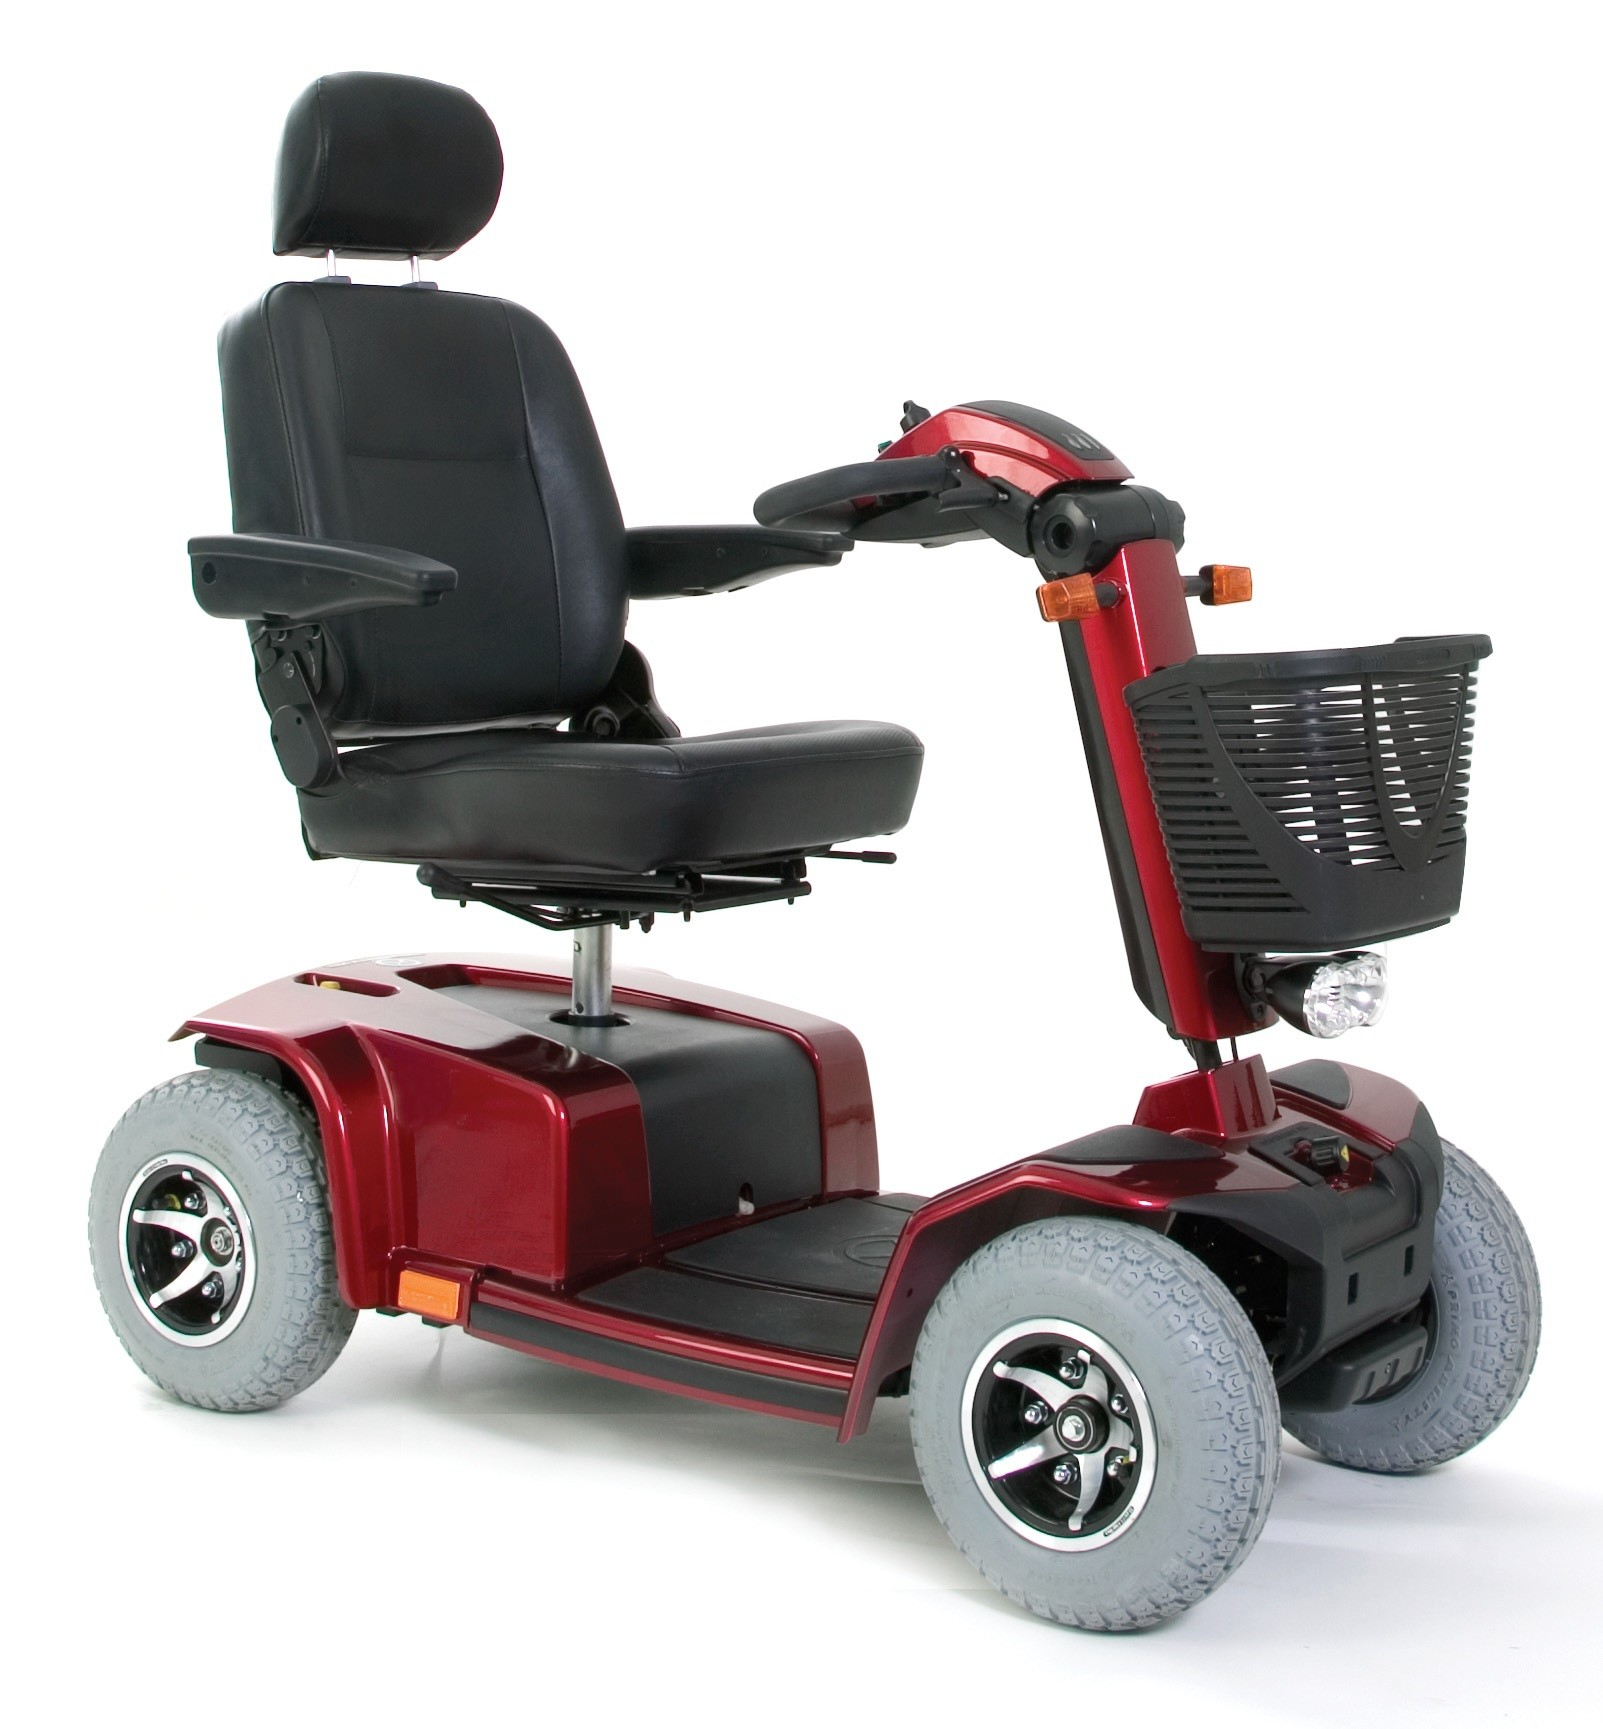 Pride celebrity xl 4 wheel replacement battery sp12 35 for Mobility chair